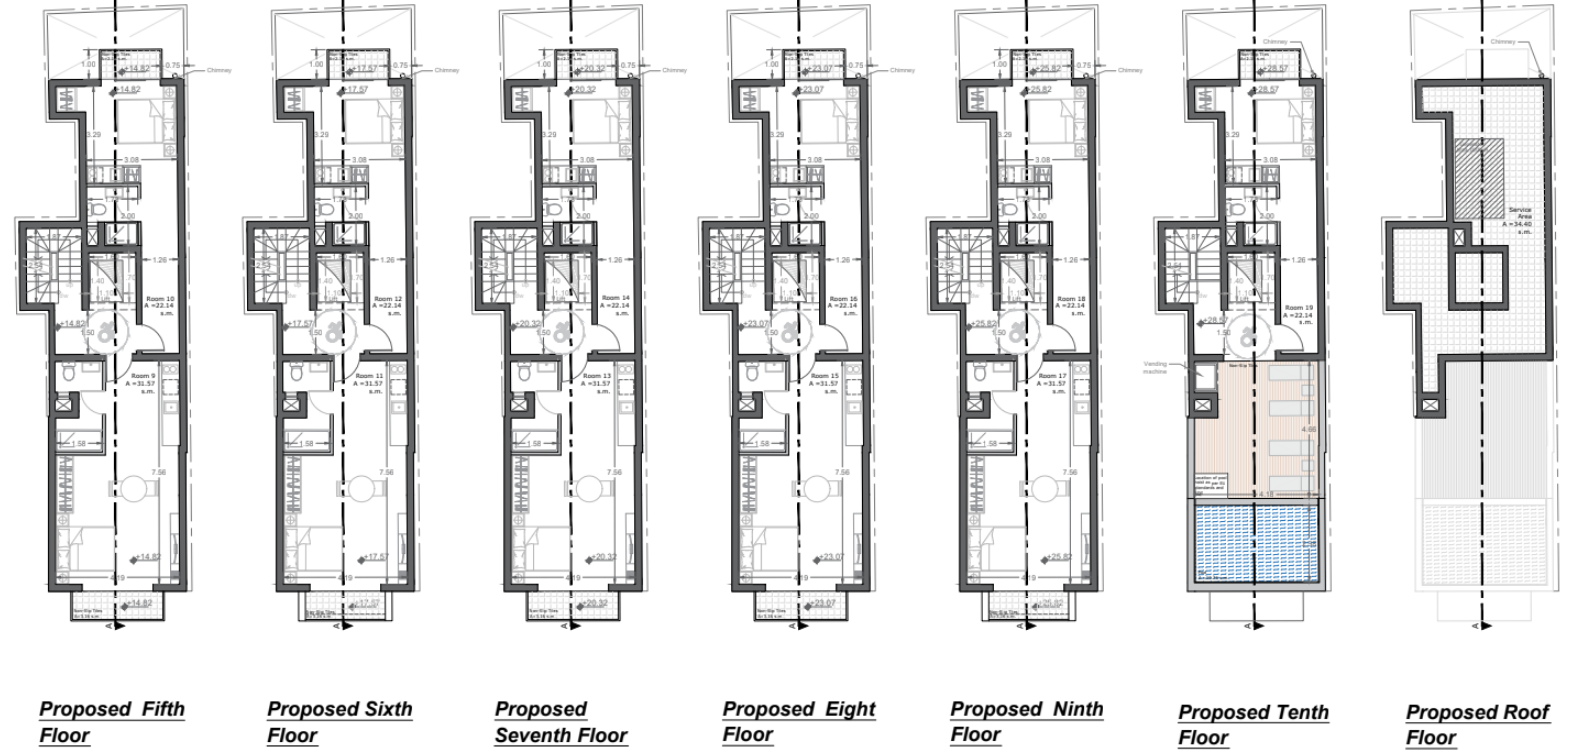 Commercial property Malta: Plans